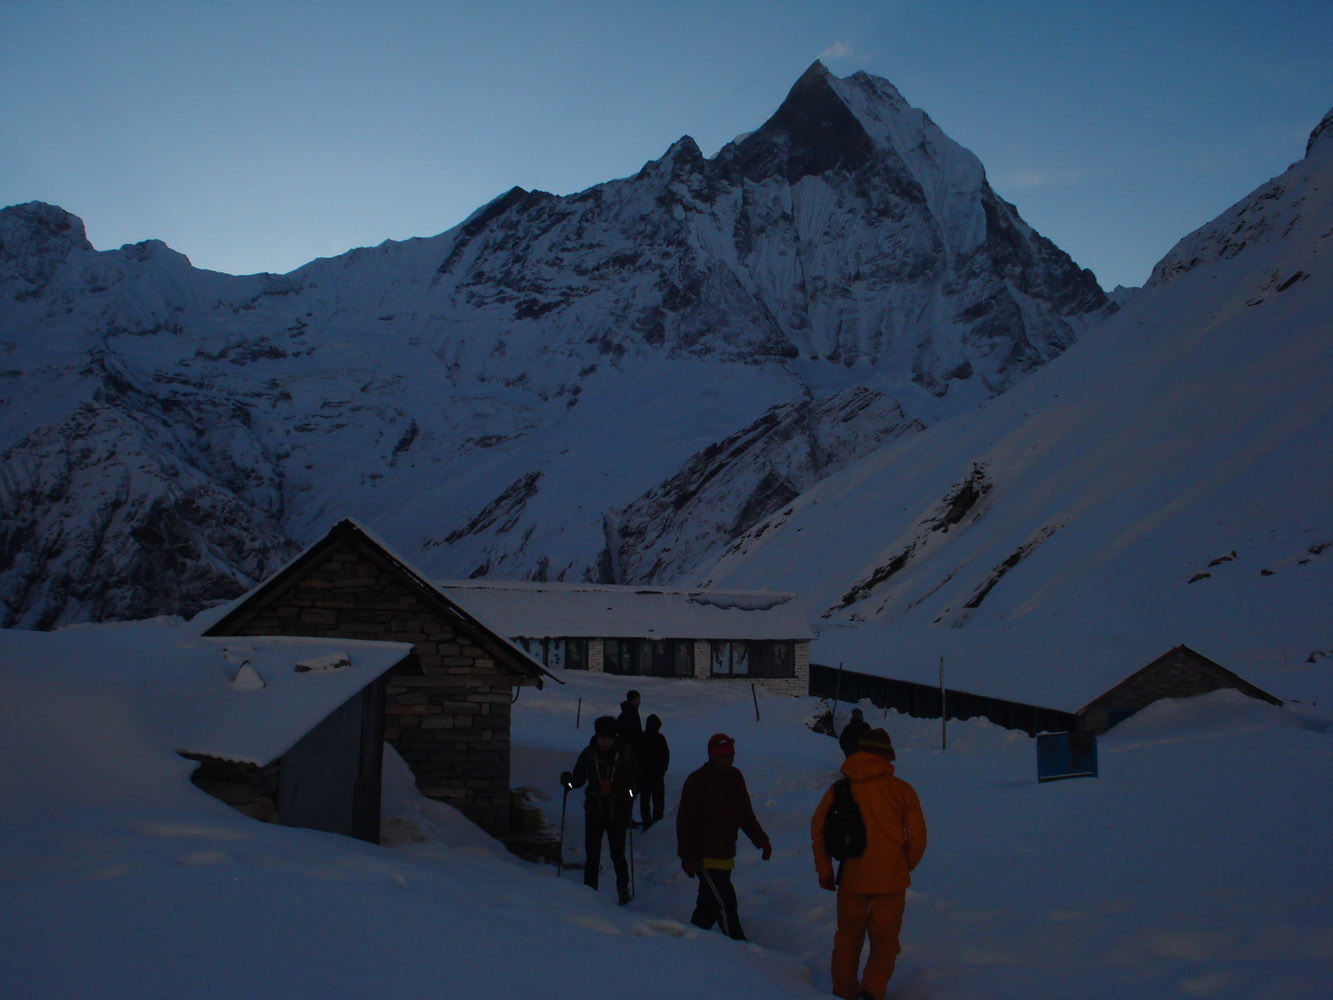 Annapurna Sanctuary and Poon Hill Trek- Annapurna base camp